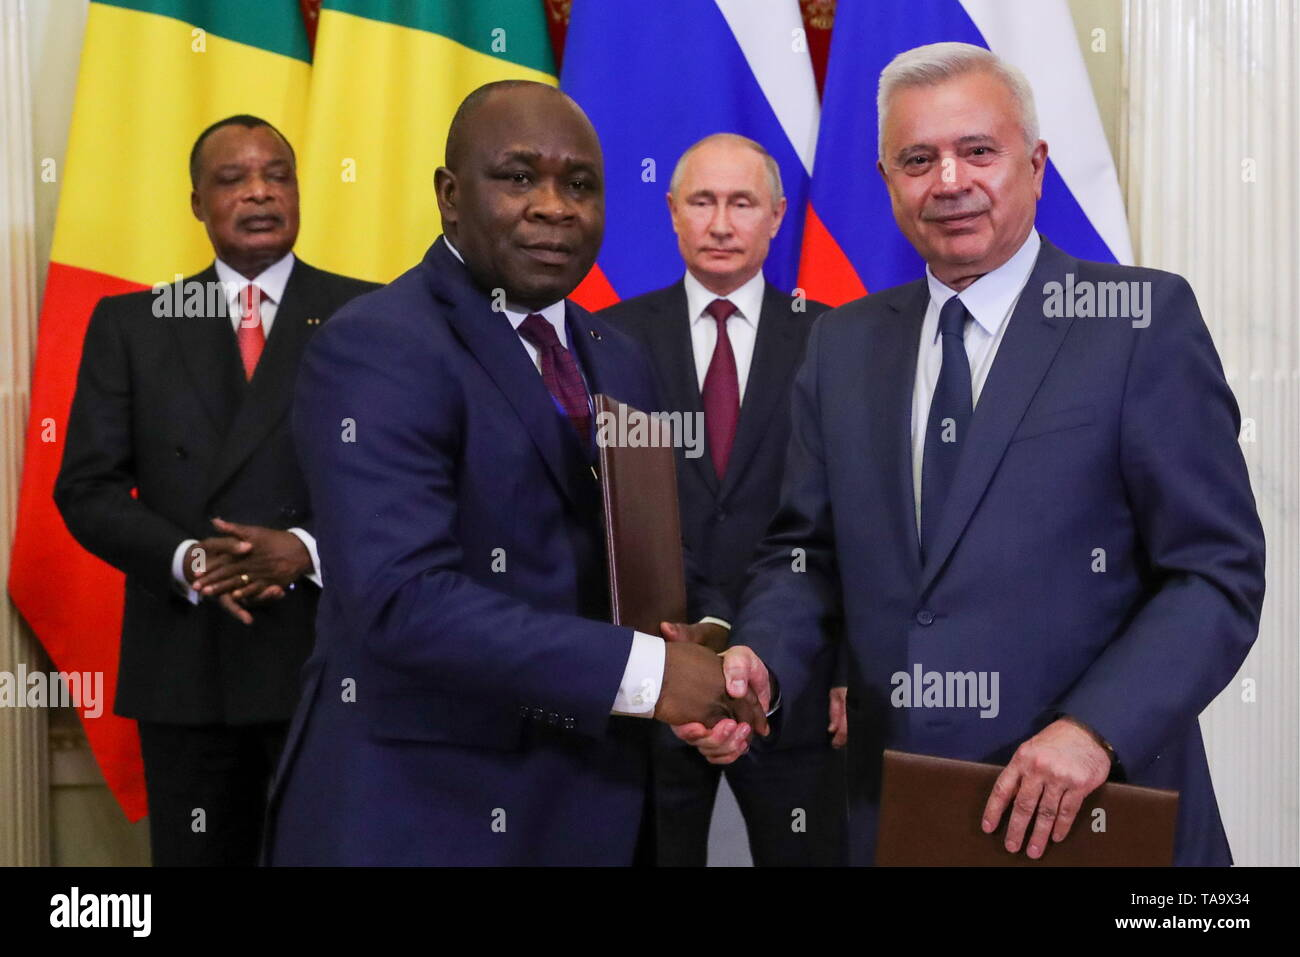 Moscow, Russia. 23rd May, 2019. MOSCOW, RUSSIA - MAY 23, 2019: Lukoil President Vagit Alekperov (R front) shakes hands with a Congolese official at a ceremony attended by Denis Sassou Nguesso, President of the Republic of Congo, and Russia's President Vladimir Putin (L-R back) to sign joint documents on Russian-Congolese talks at the Moscow Kremlin. Mikhail Klimentyev/Russian Presidential Press and Information Office/TASS Credit: ITAR-TASS News Agency/Alamy Live News - Stock Image